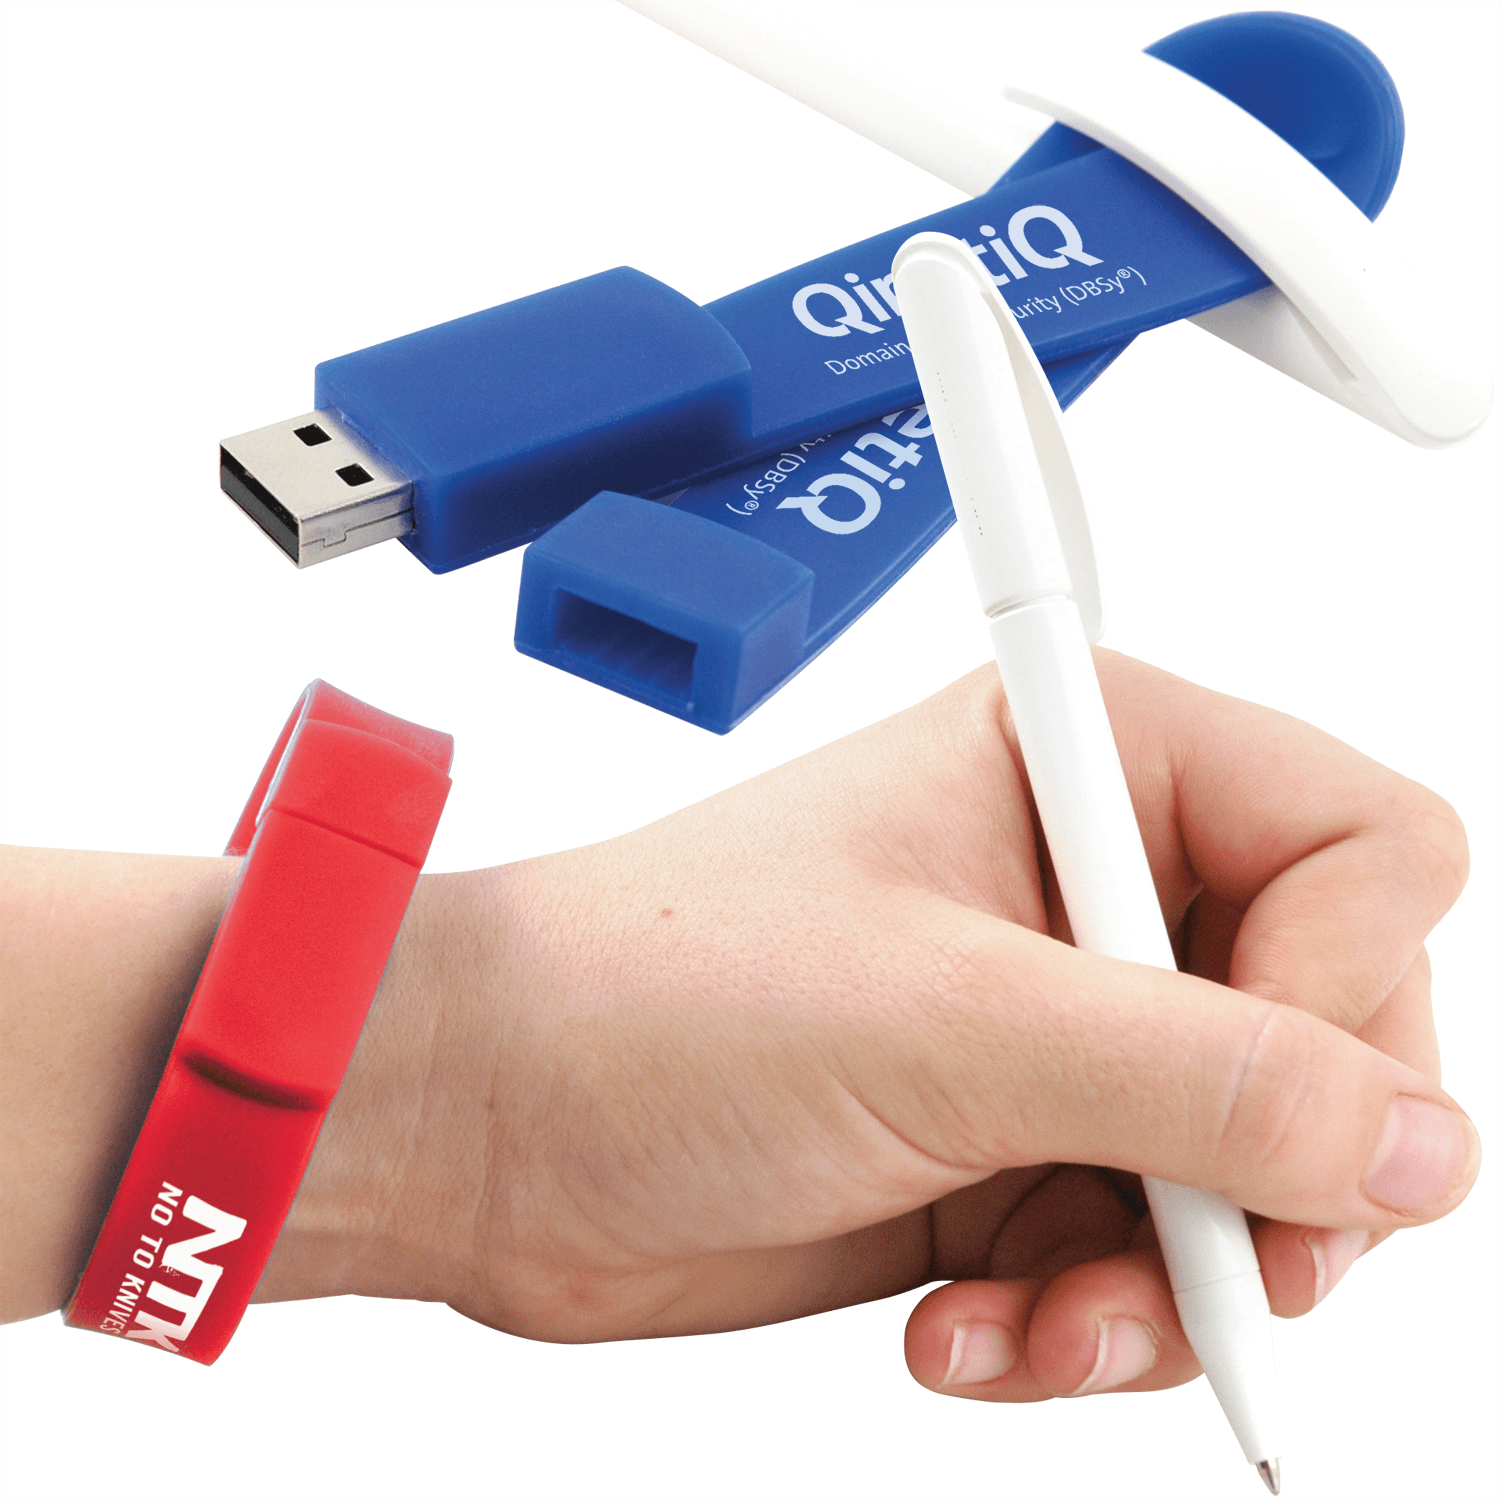 Wrist Band Promo USB Memory Stick